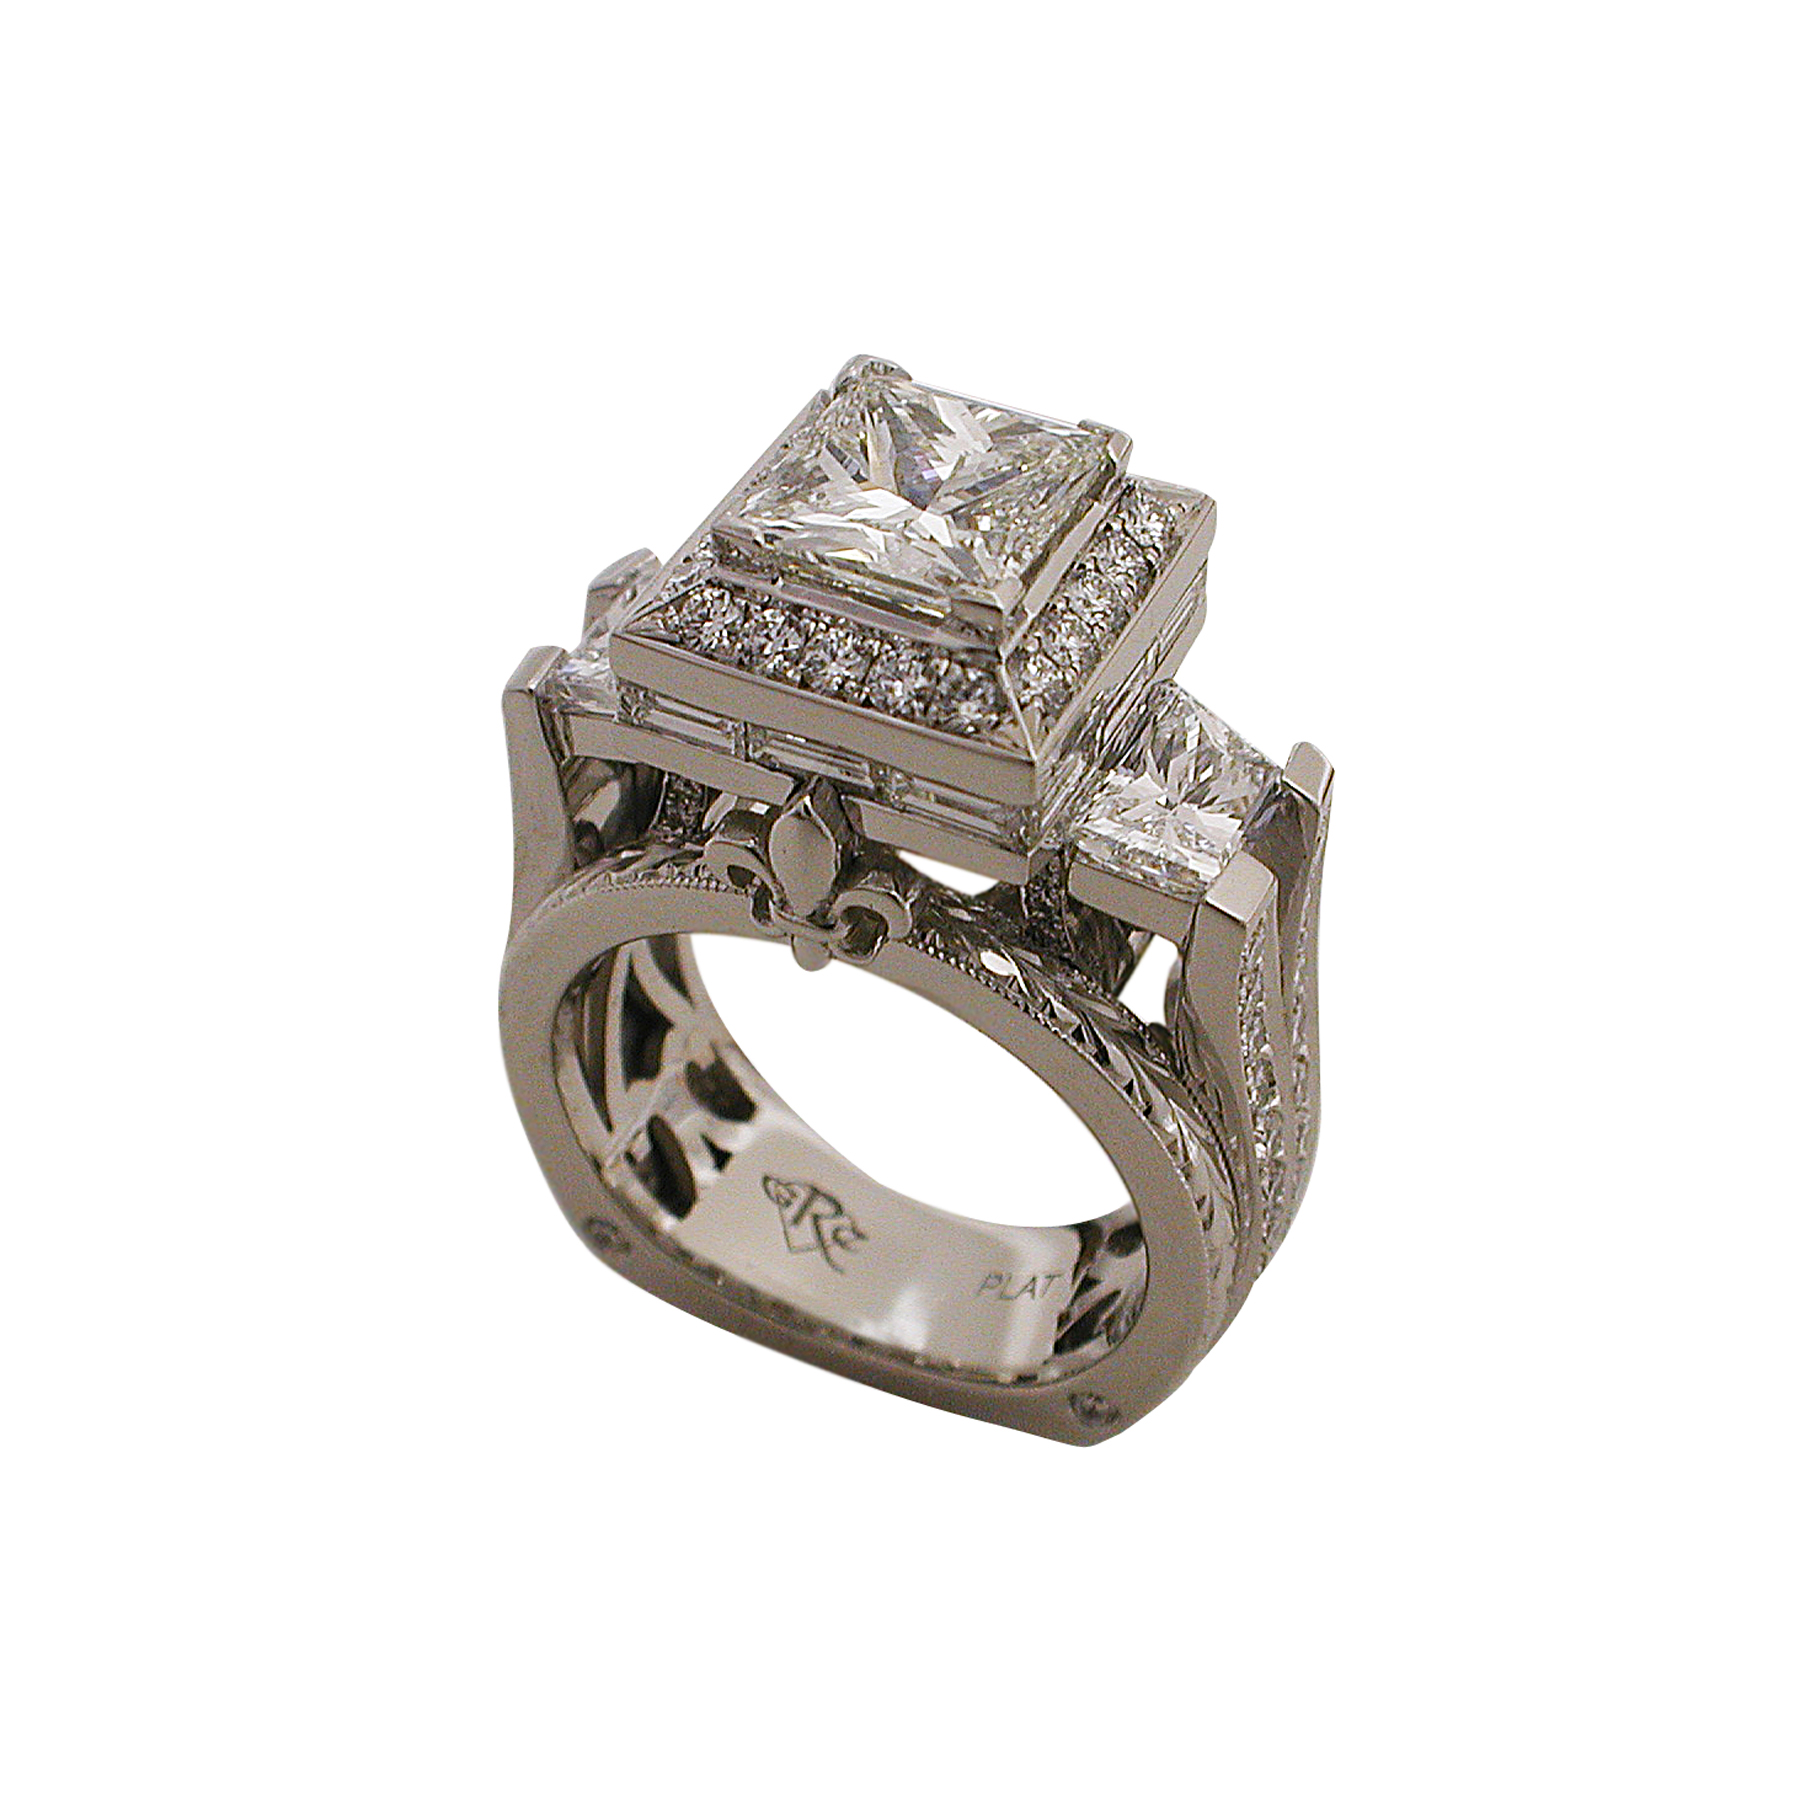 Platinum Princess Cut & Trapezoid Cut Diamond Ring - Angle View